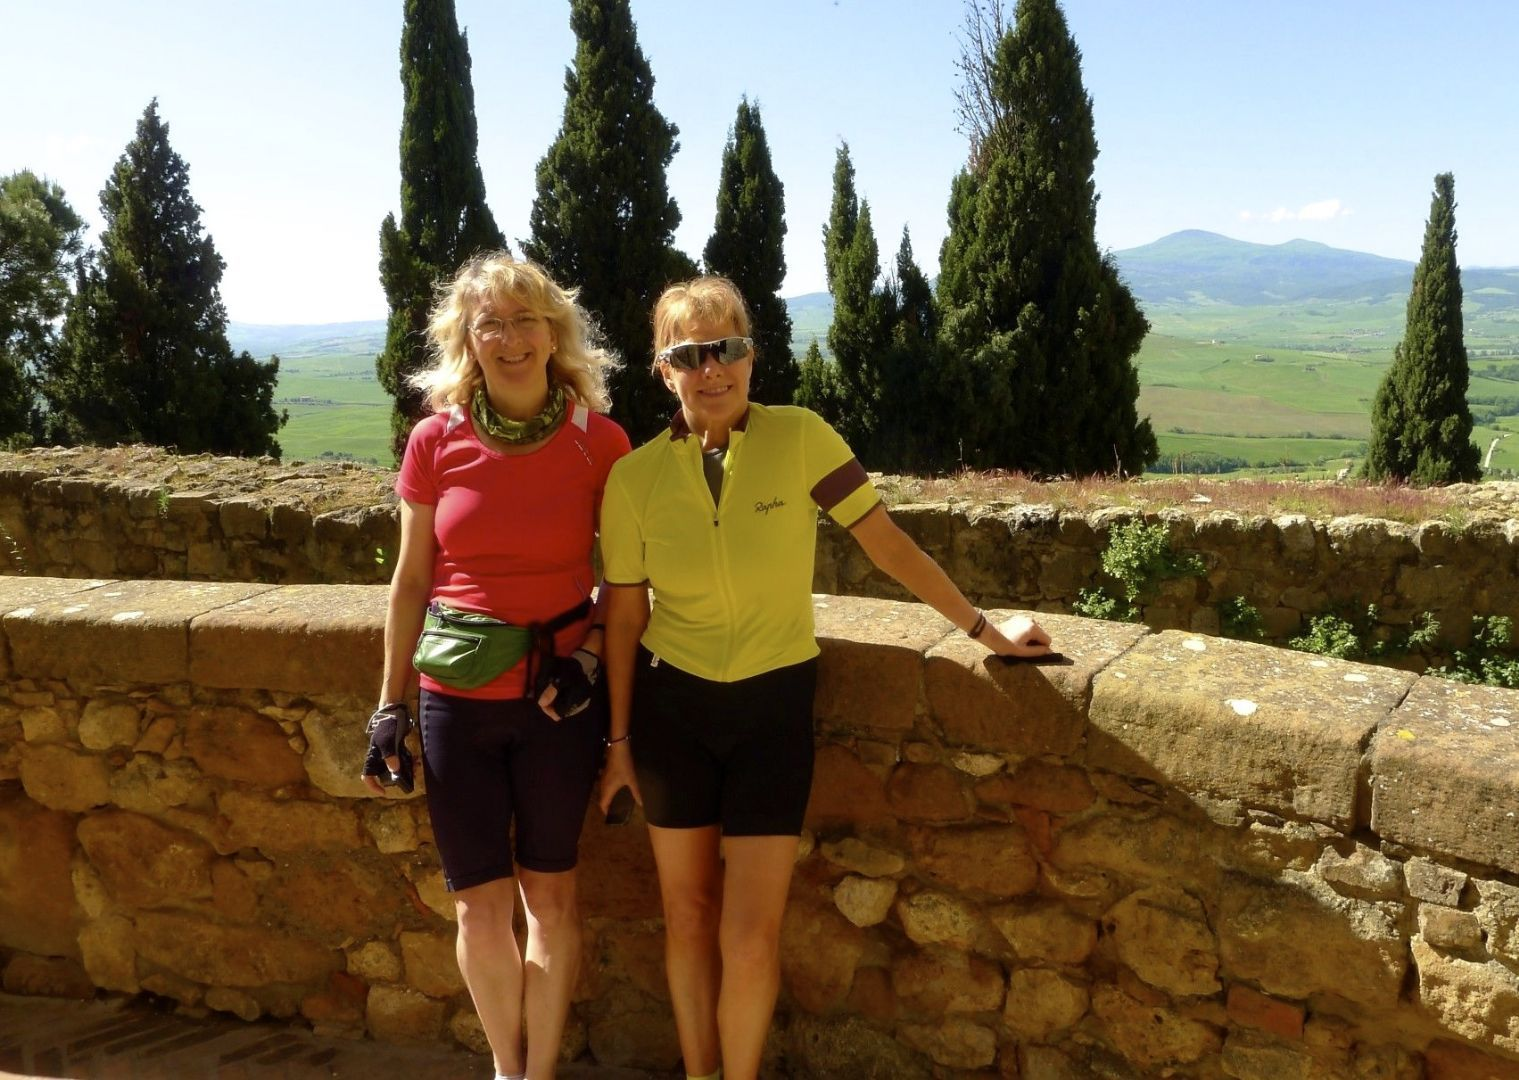 hfh cycling holiday tuscany1.jpg - Italy - Tuscany - Pisa to Florence - Self-Guided Leisure Cycling Holiday - Leisure Cycling